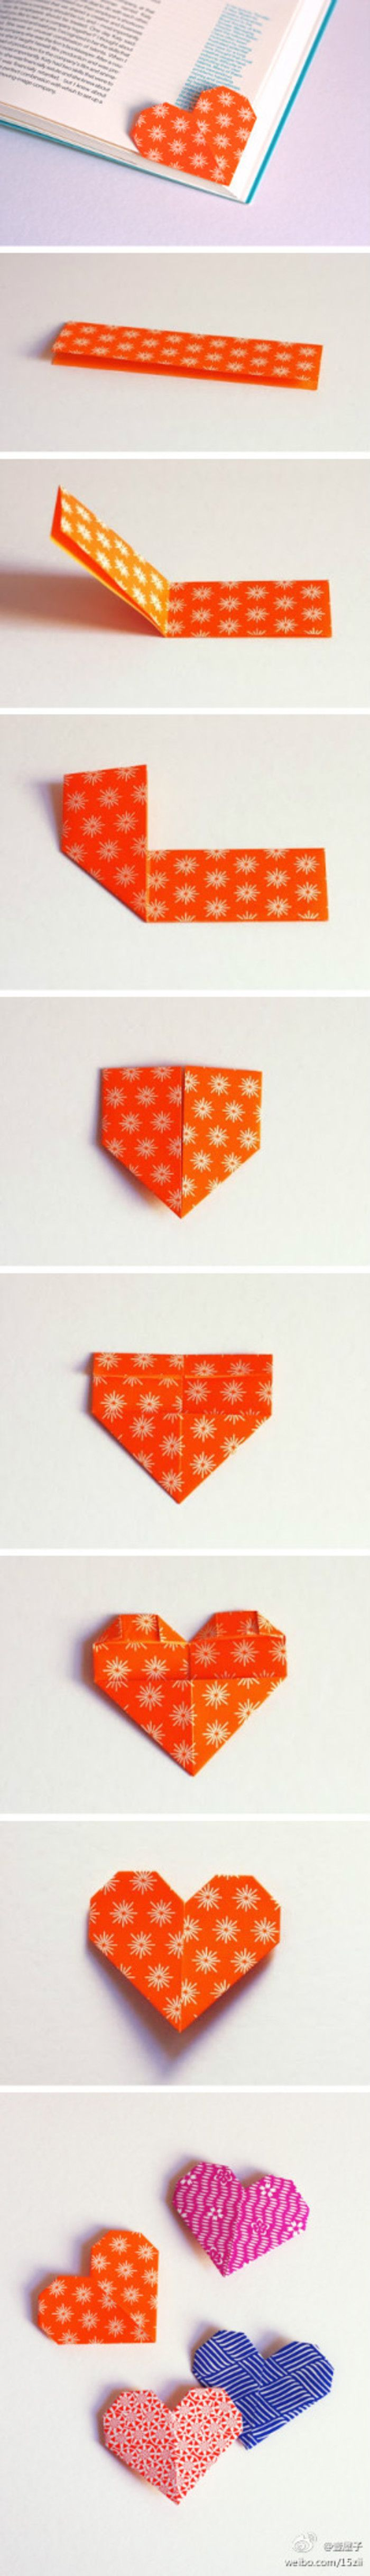 DIY handmade heart-shaped origami bookmark Tutorial